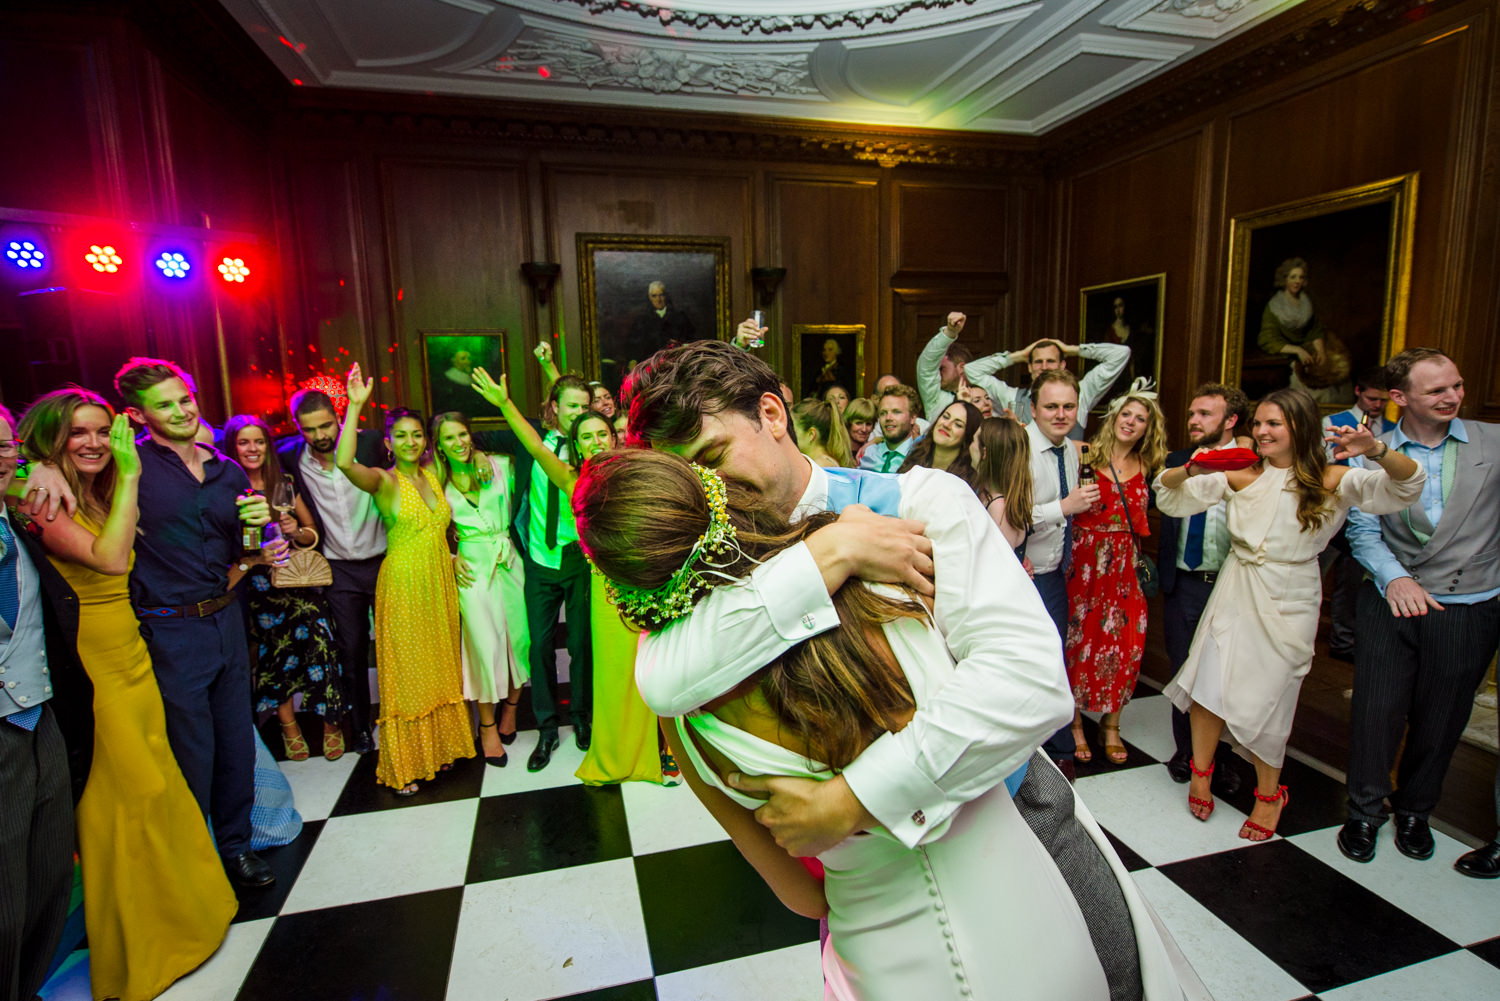 Wedding party dancing at Cowdray House